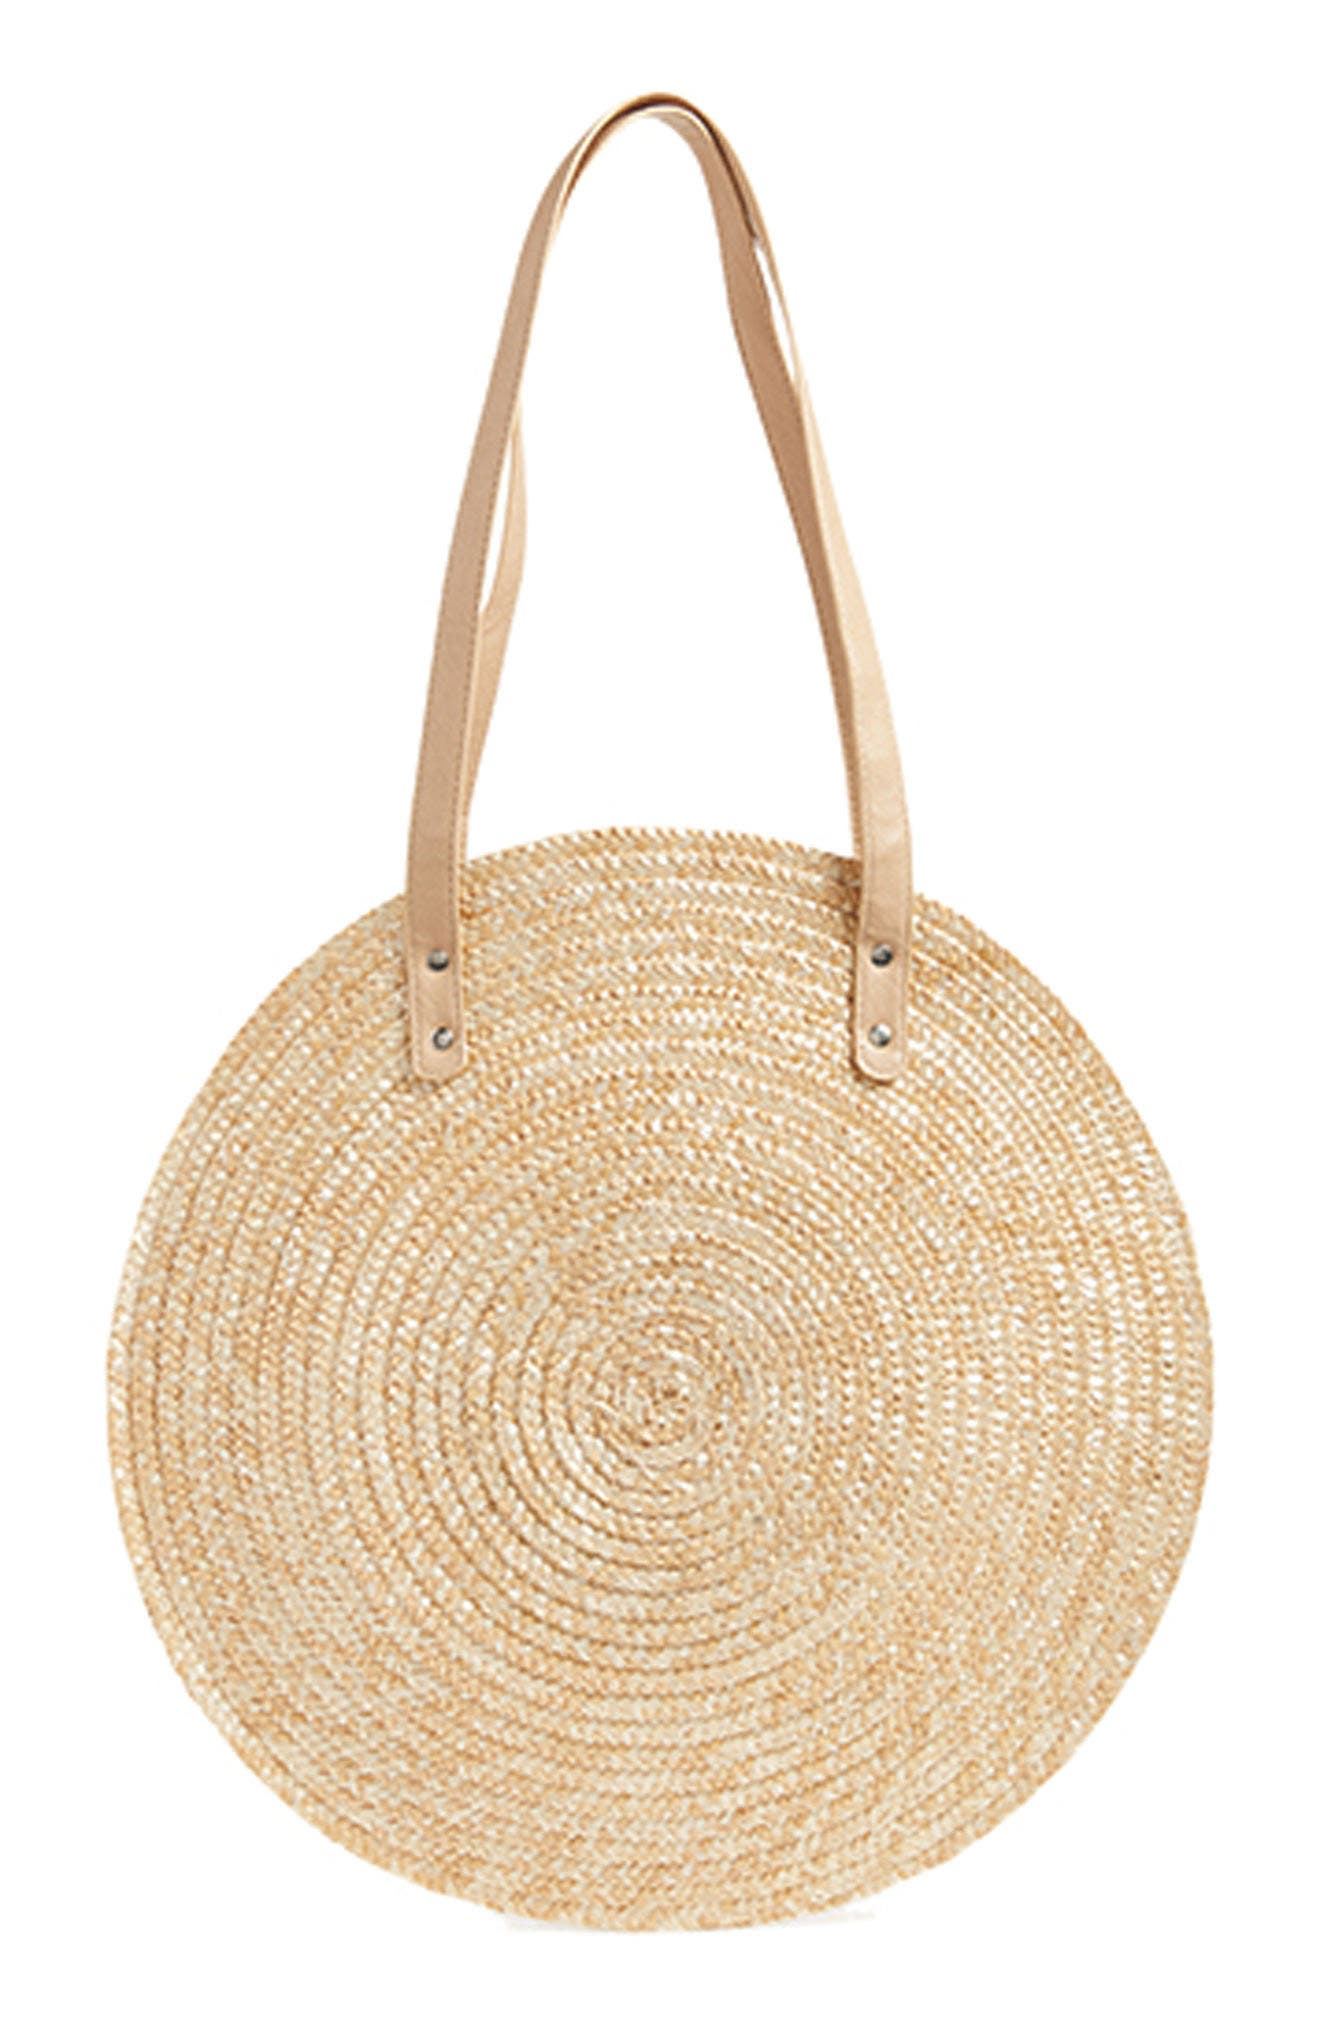 Circle Basket Tote Bag,                             Alternate thumbnail 8, color,                             250